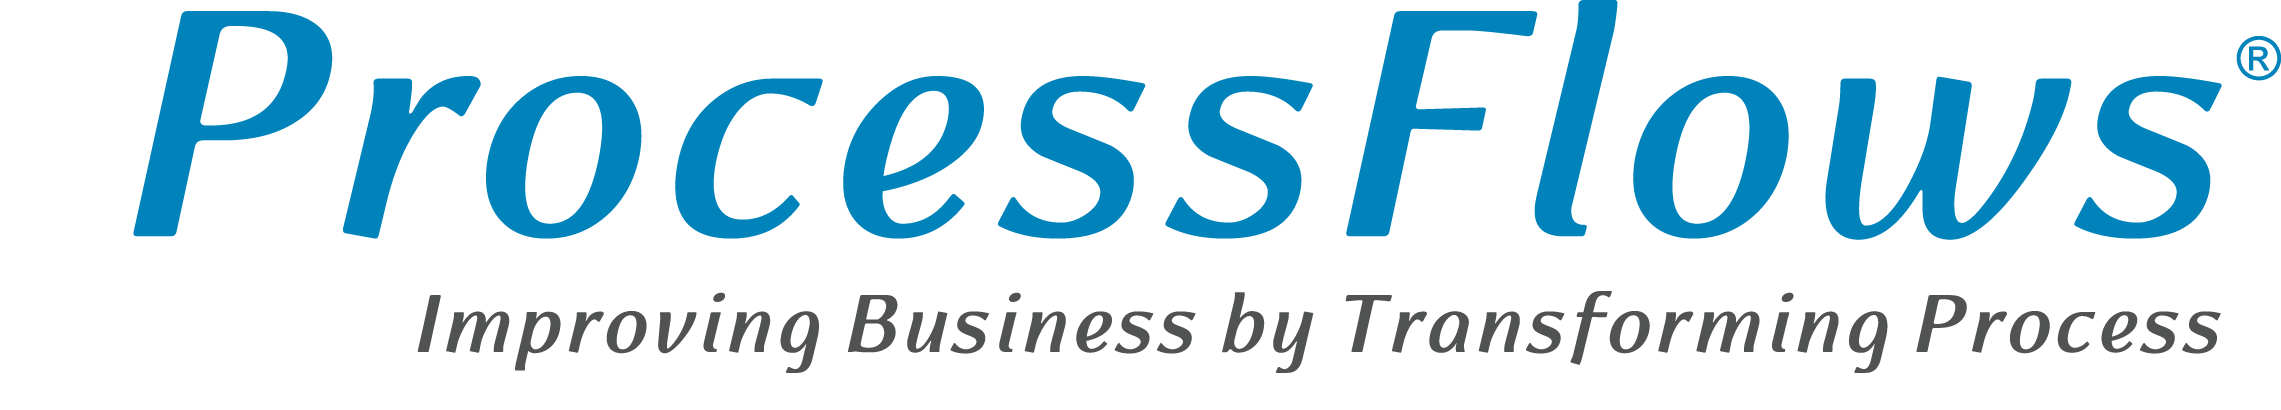 ProcessFlows Logo